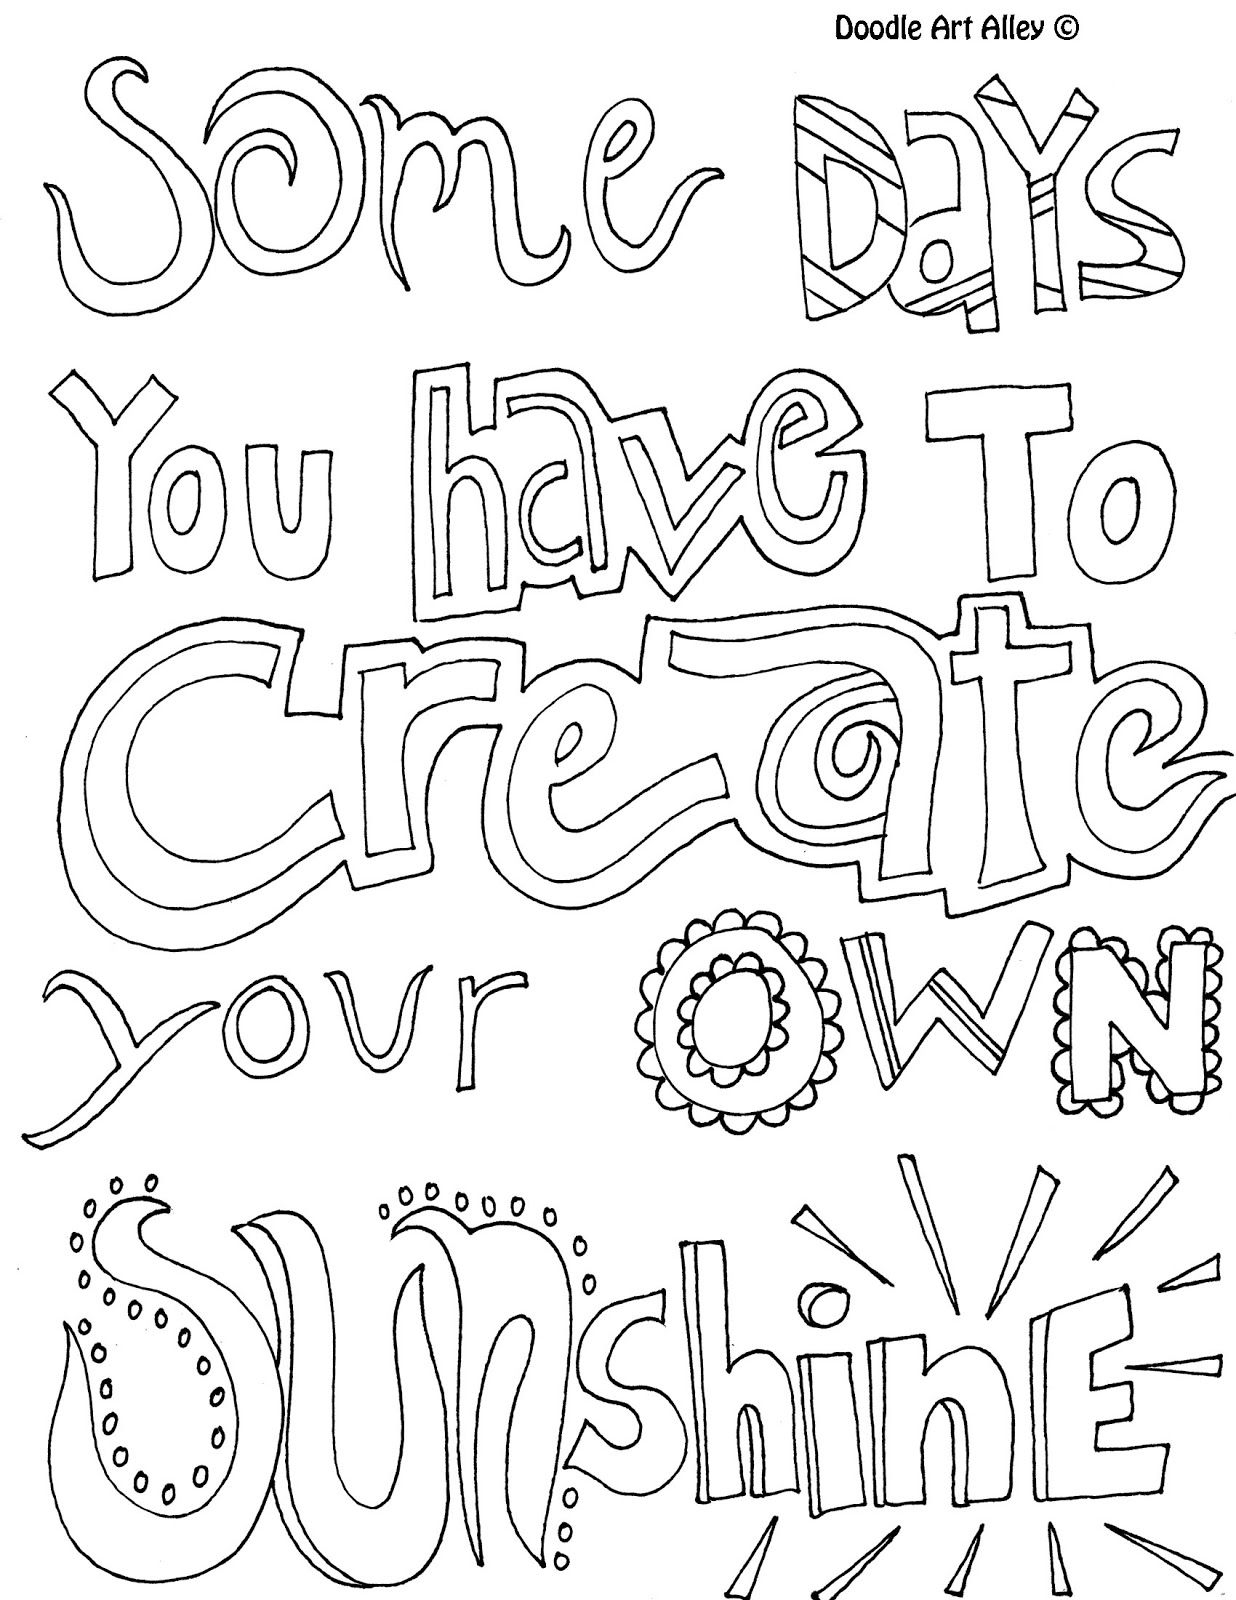 All Quotes Coloring Pages Great Quotes Doodle Page Great to Use Printable Of Fresh Inspirational Coloring Pages for Adults Line and Studynow to Print